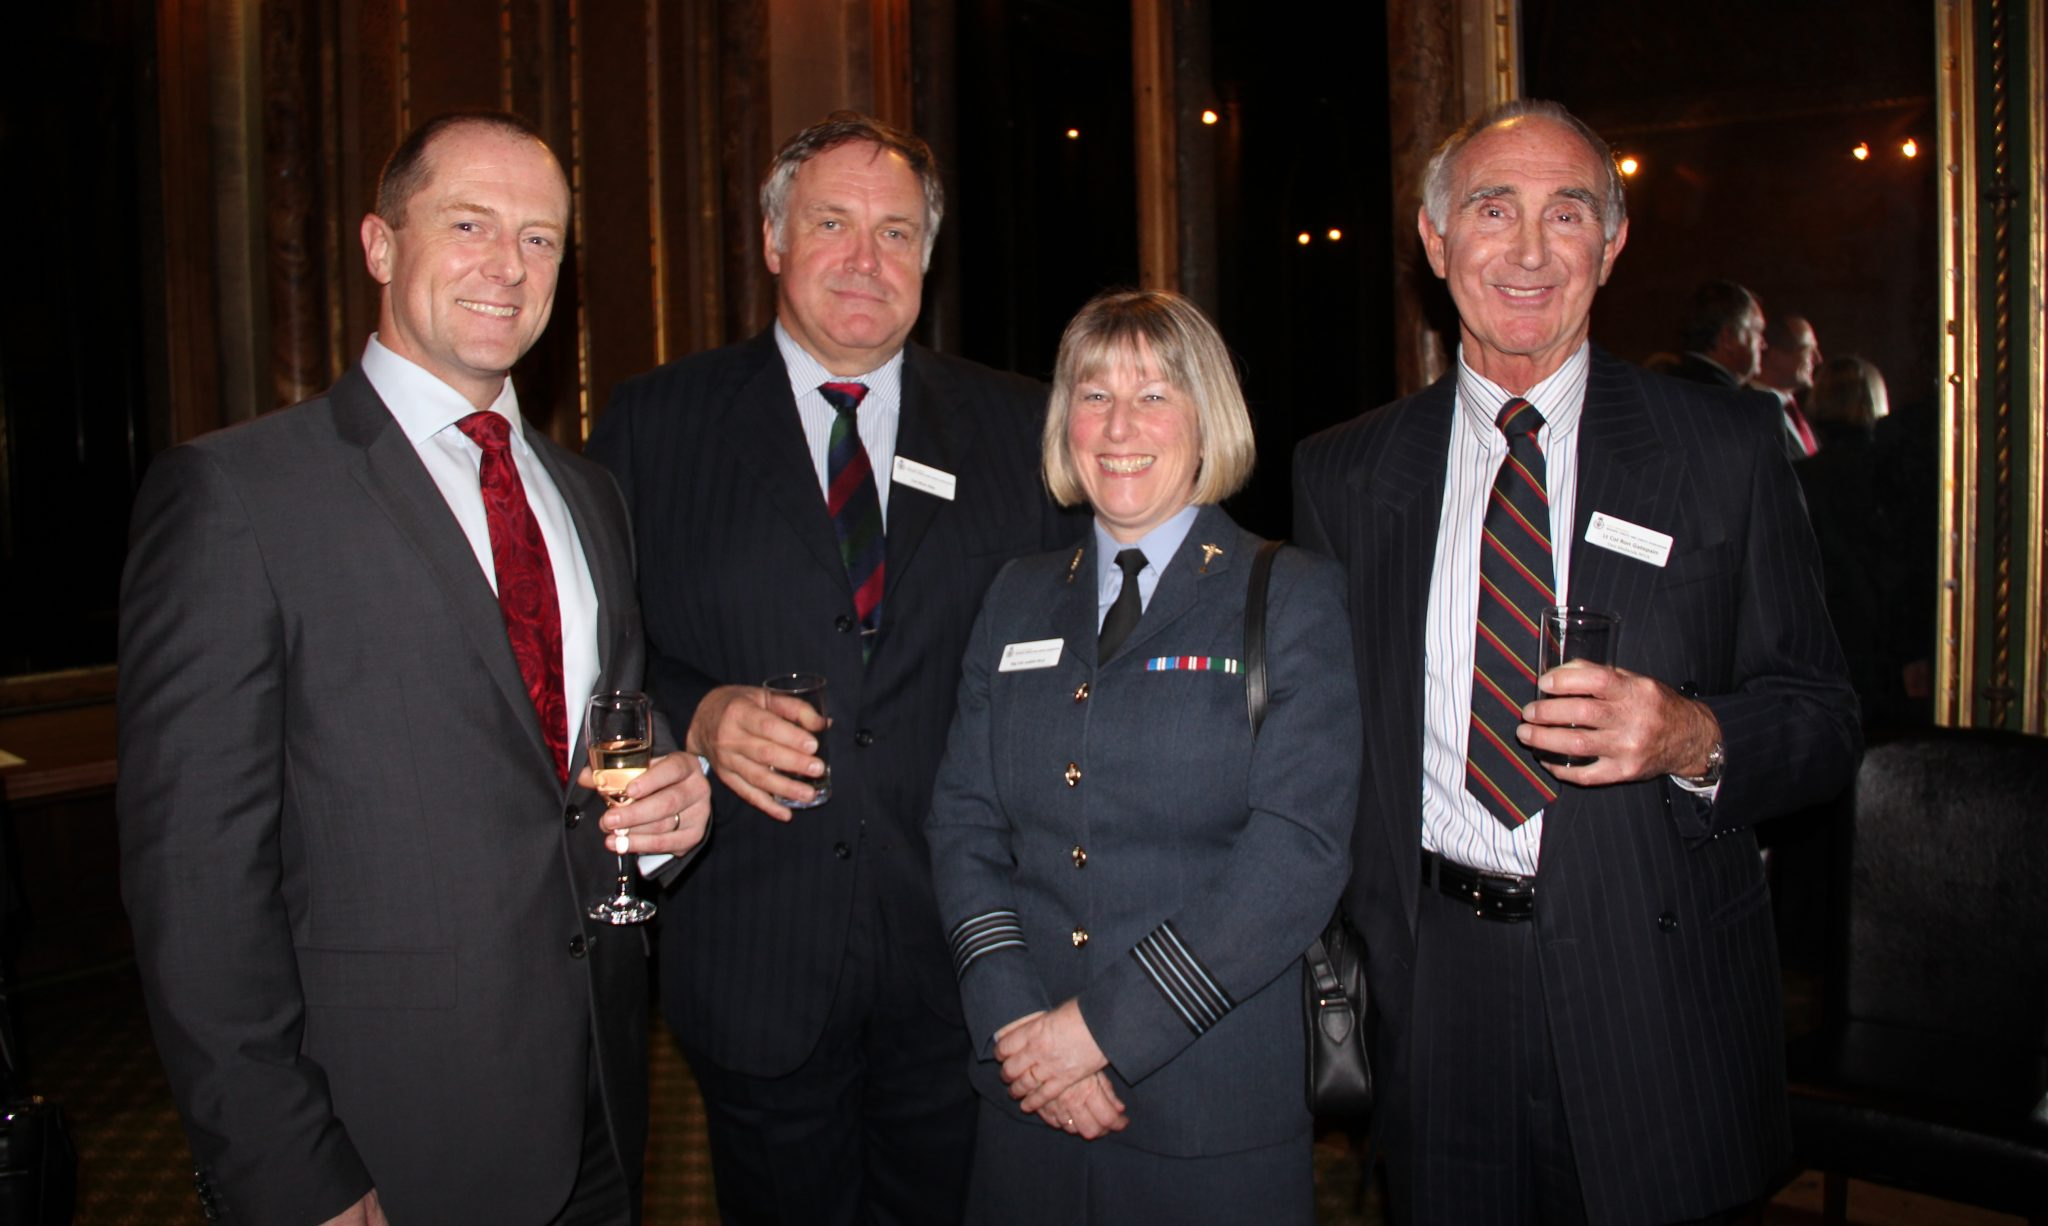 Employer Recognition Scheme Silver Award Event East